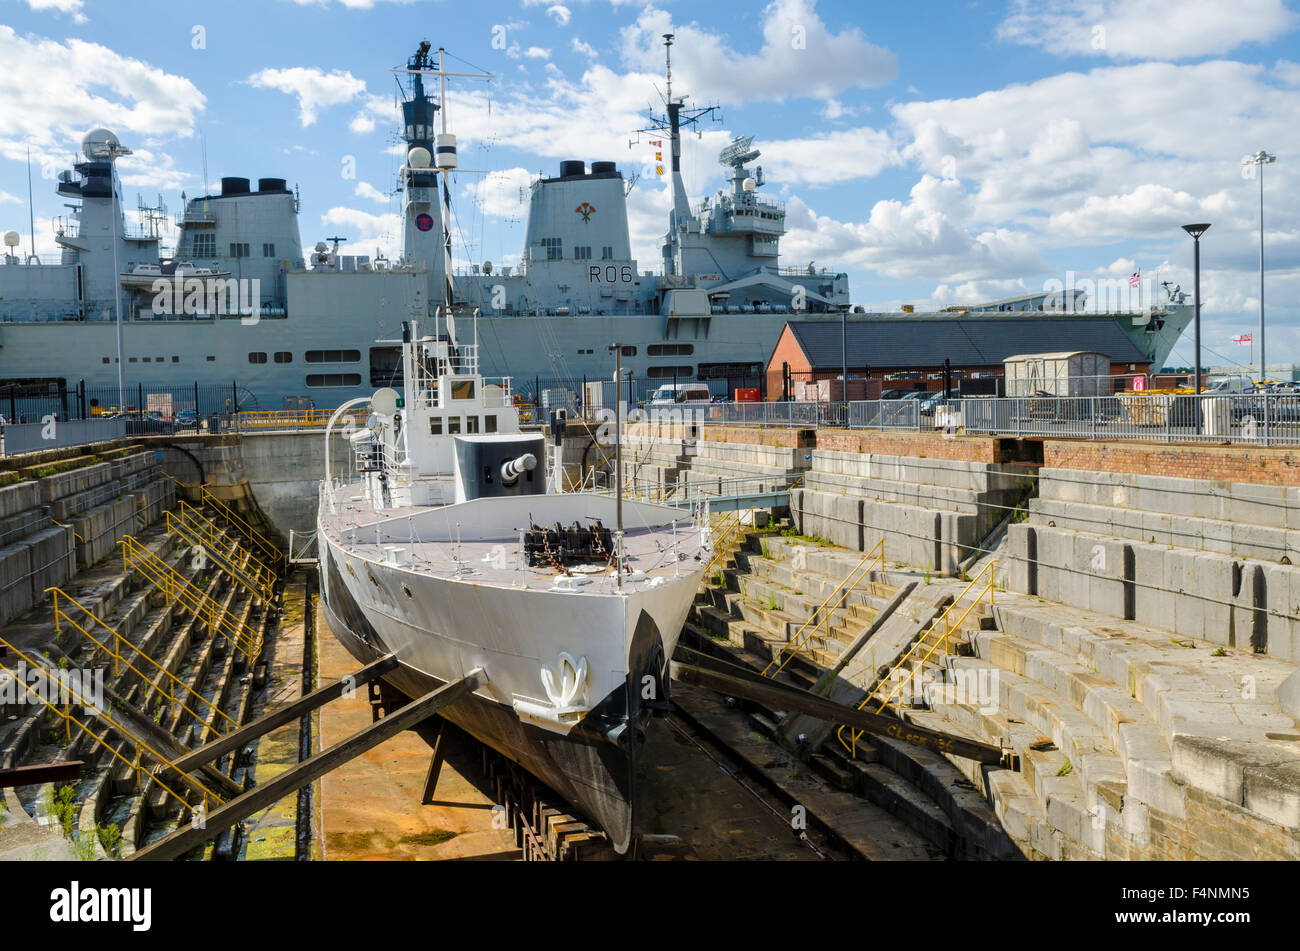 HMS M33 First World War Warship in dry dock at Portsmouth Historic Dockyard, Hampshire, England. - Stock Image